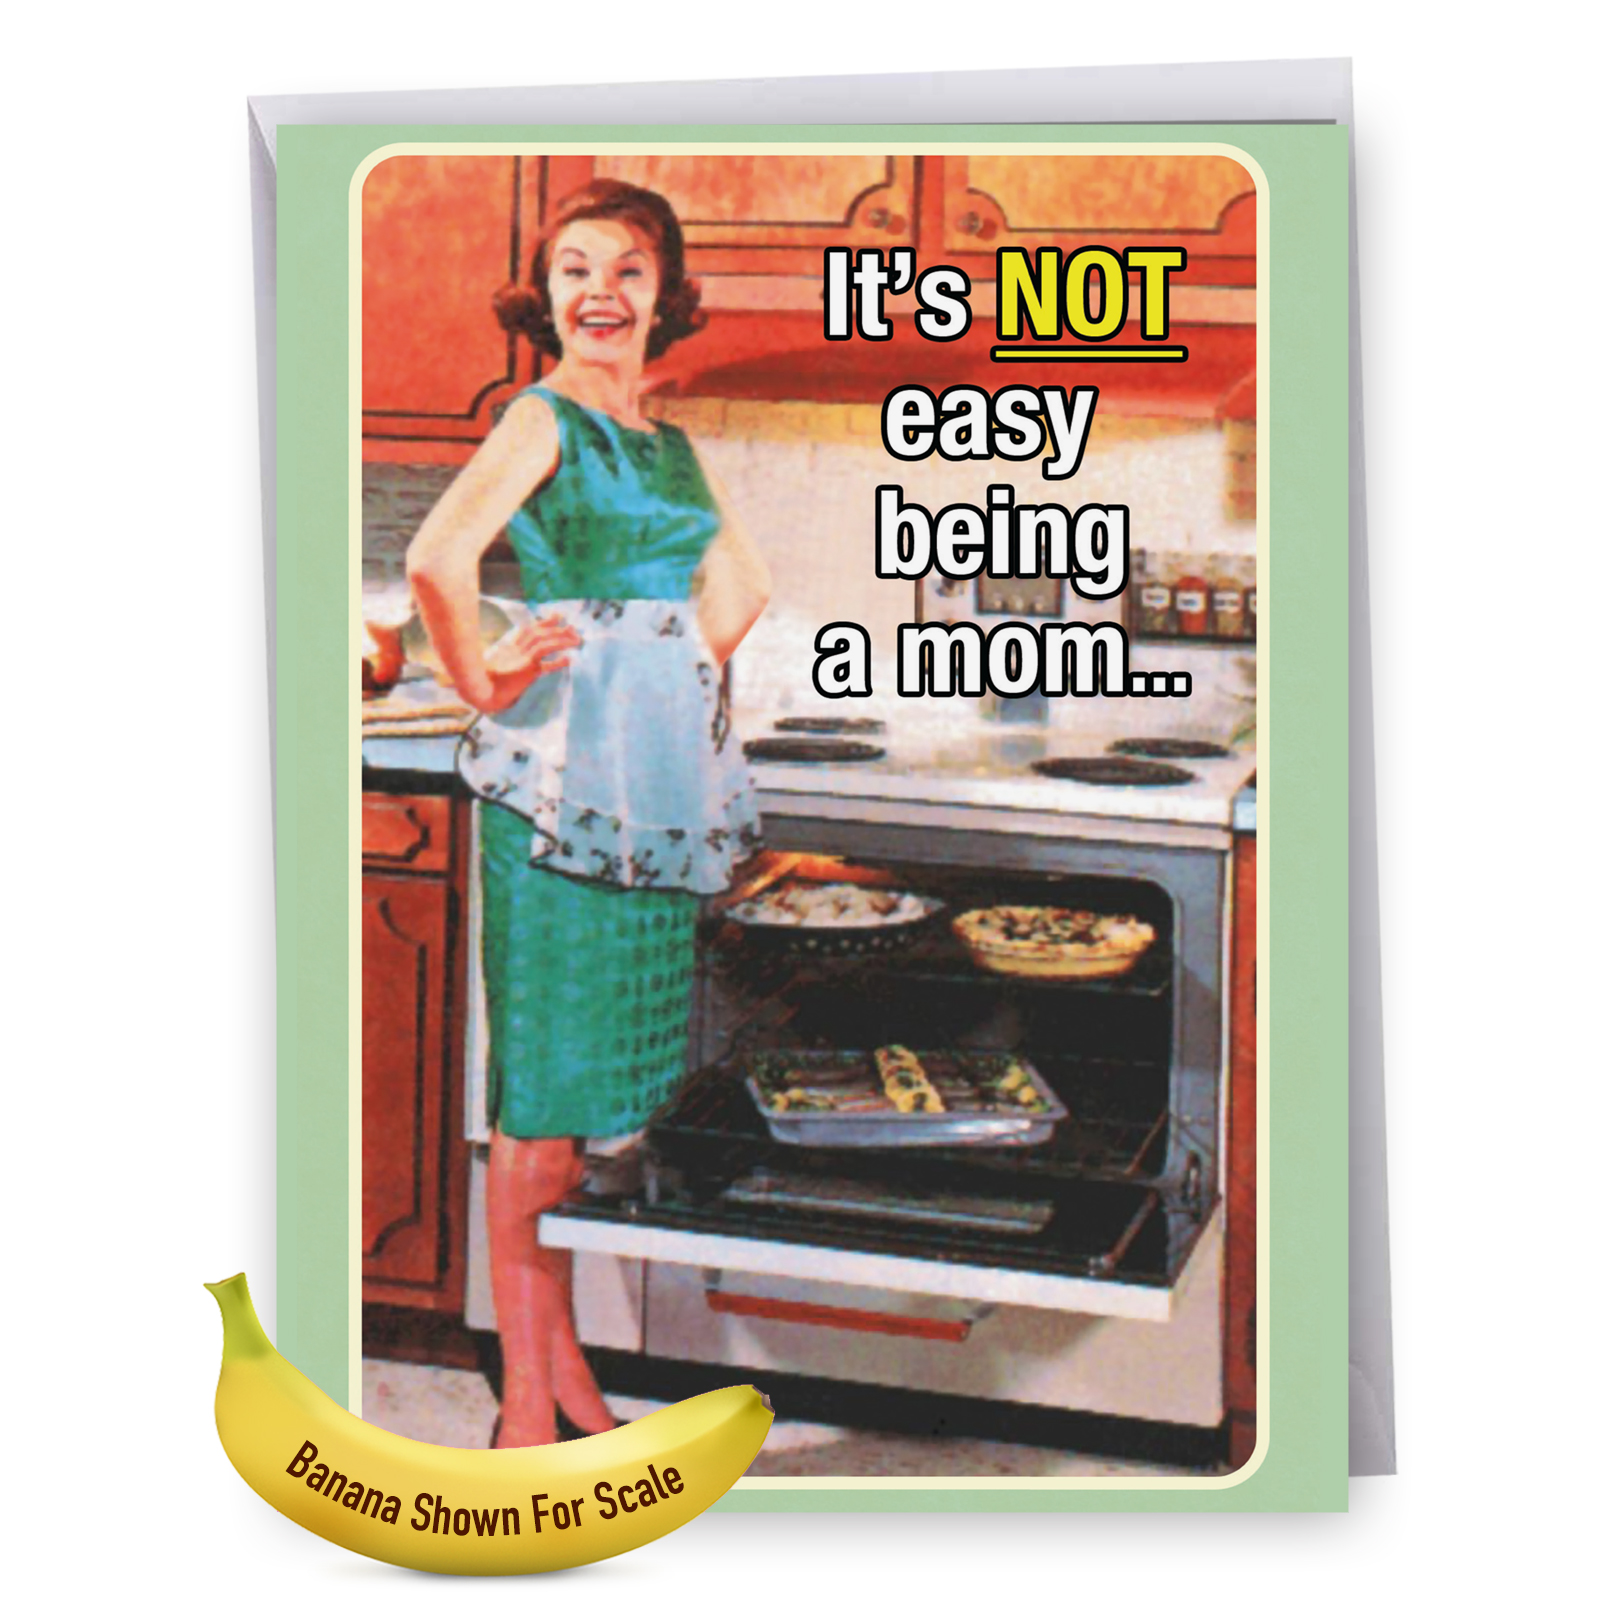 "J9856MDG Jumbo Hilarious Mother's Day Card: 'J9856MDG Funny: Motherhood Not Easy With Envelope (Ex...' with Envelope (Jumbo Size: 8.5"" x 11"")"